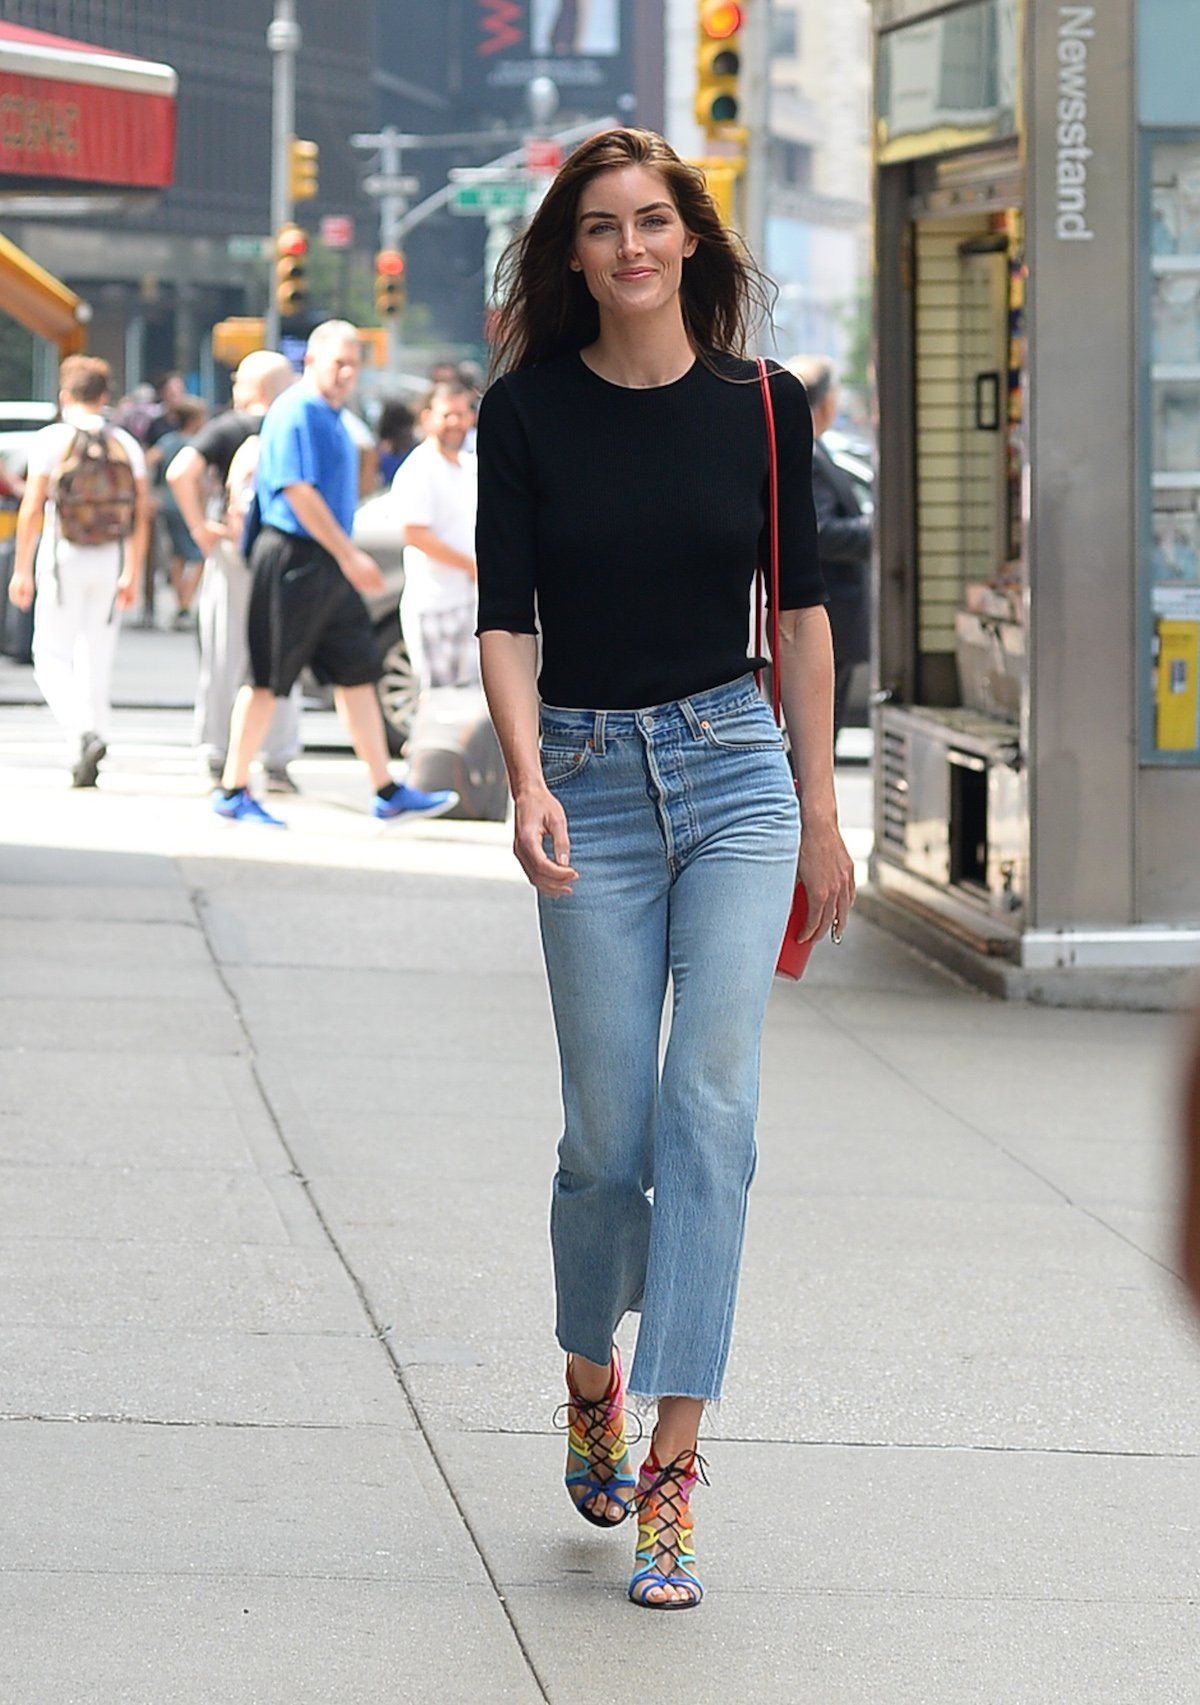 27efe7468f8 Hilary Rhoda attended castings in a plain black top and light-wash jeans --  at the Victoria s Secret Fashion Show 2017 casting call ...